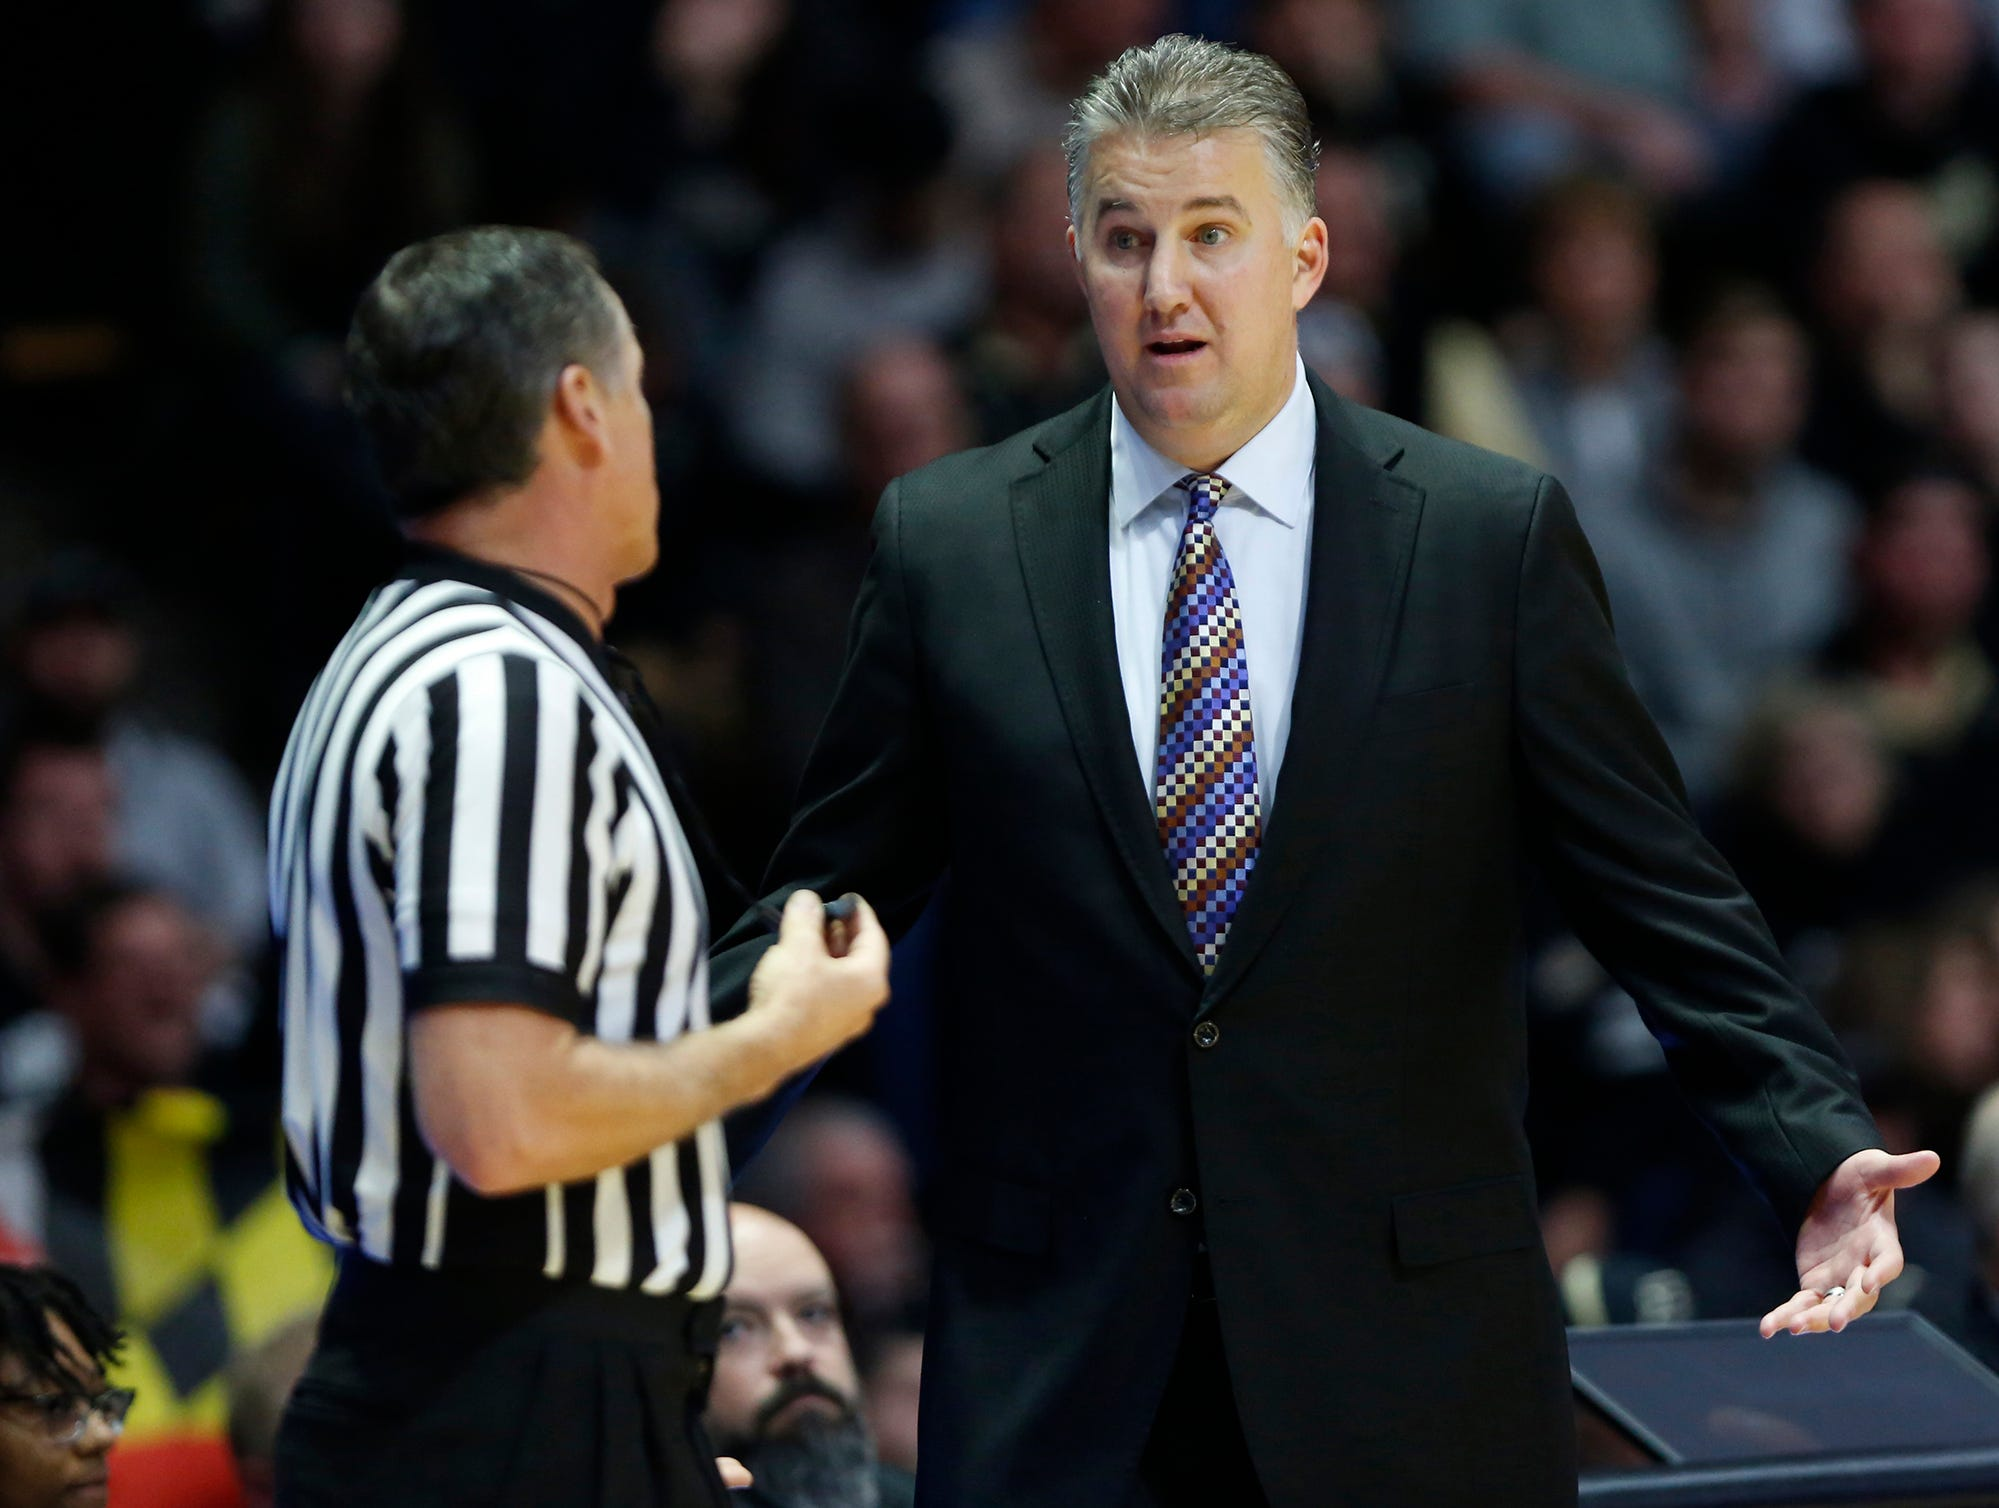 Purdue head coach Matt Painter questions a call by the officials as the Boilermakers battle Maryland Thursday, December 6, 2018, at Mackey Arena. Purdue defeated Maryland 62-60.